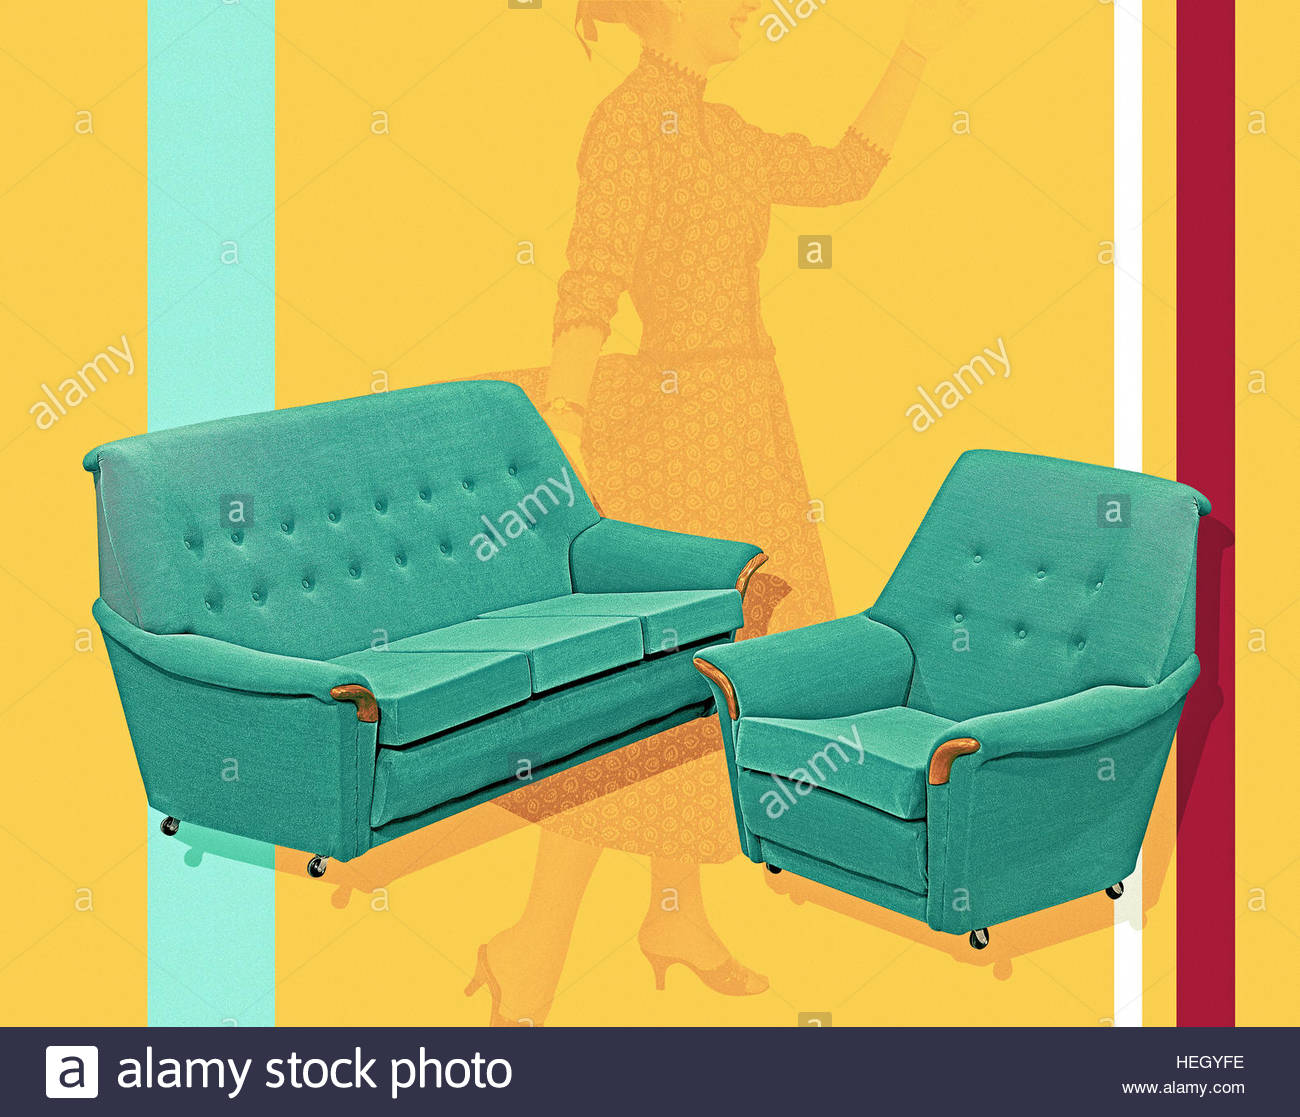 Peachy Gone Shopping Mid Century Retro Vintage Furniture Sofa Download Free Architecture Designs Scobabritishbridgeorg